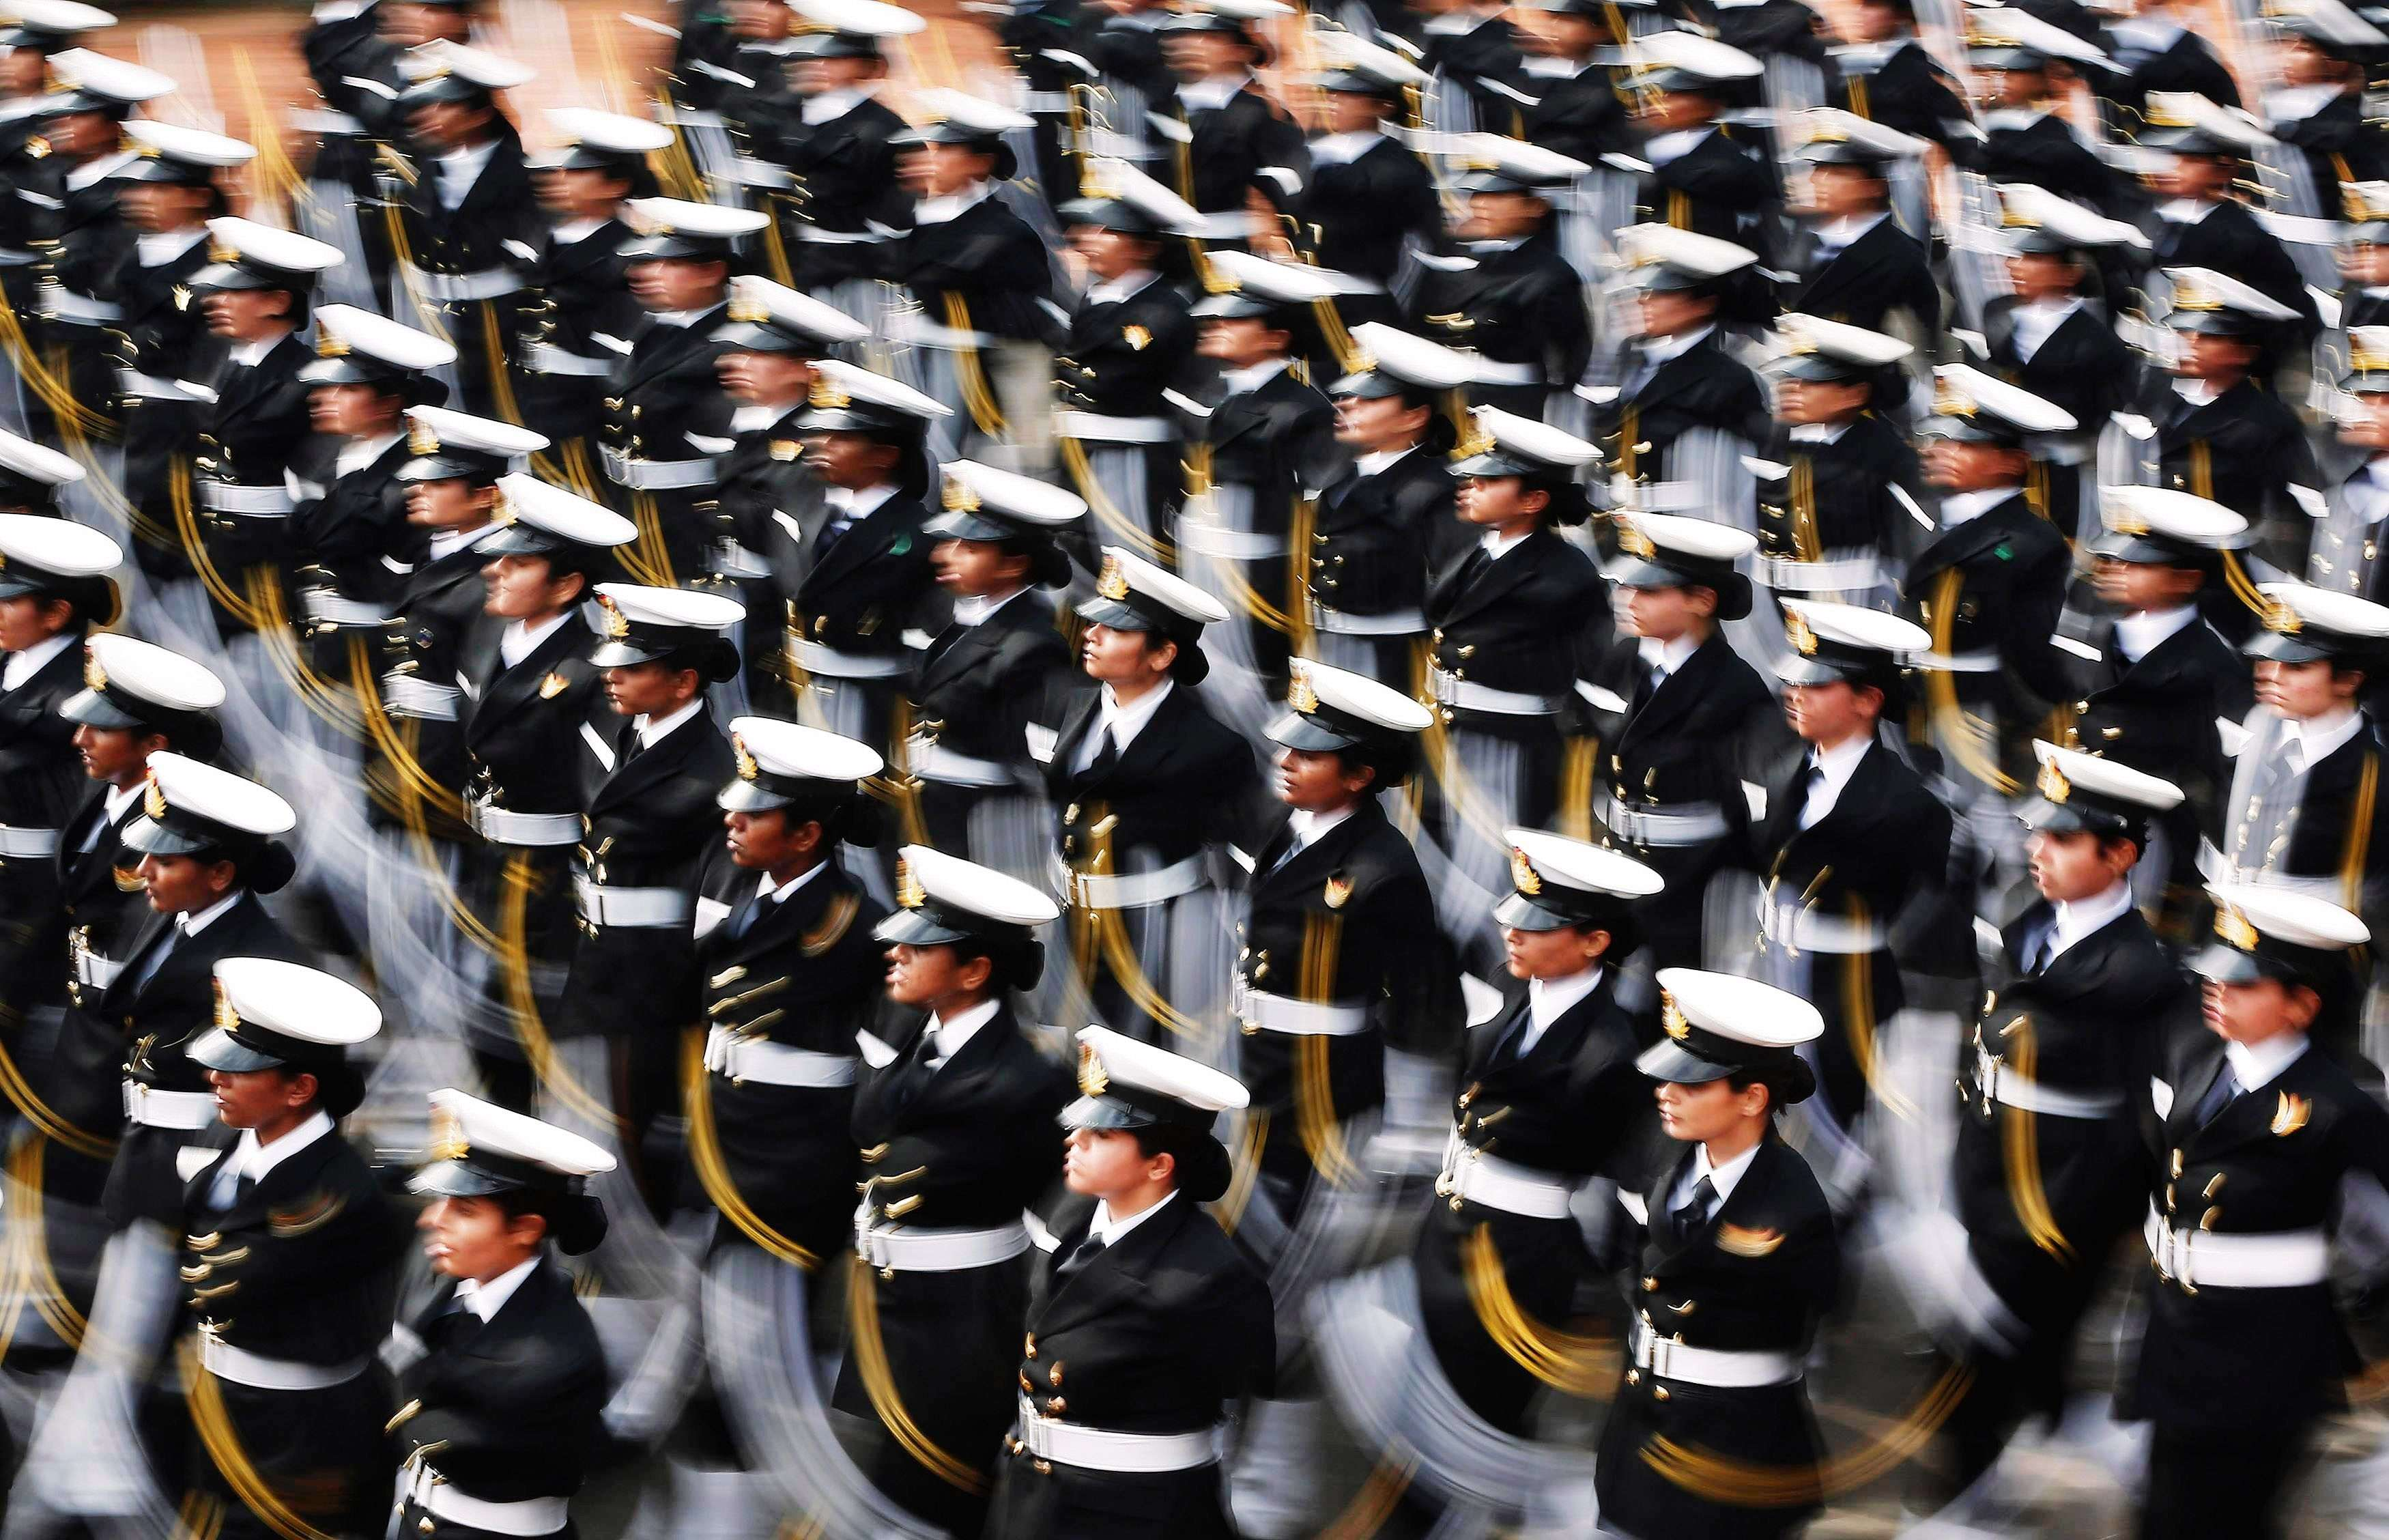 Soldiers march during the full dress rehearsal for the Republic Day parade in New Delhi. (REUTERS/Adnan Abidi)